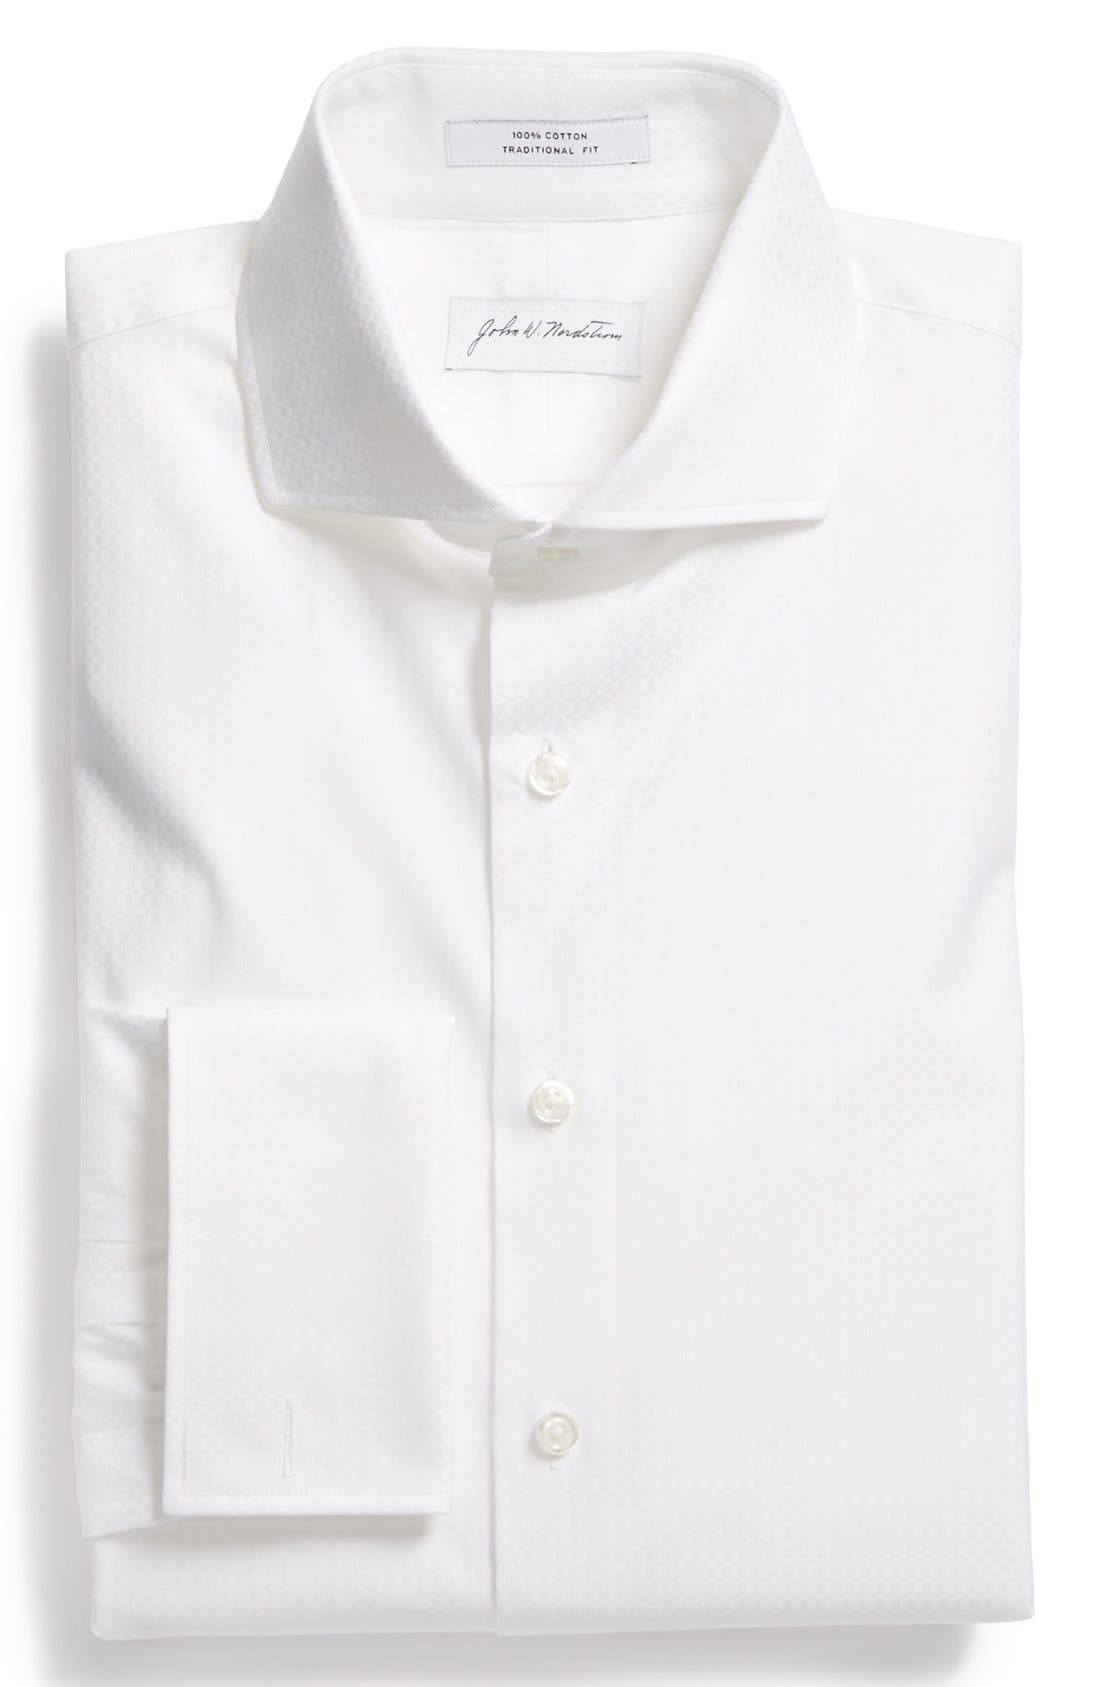 Alternate Image 1 Selected - John W. Nordstrom® Traditional Fit Tuxedo Shirt